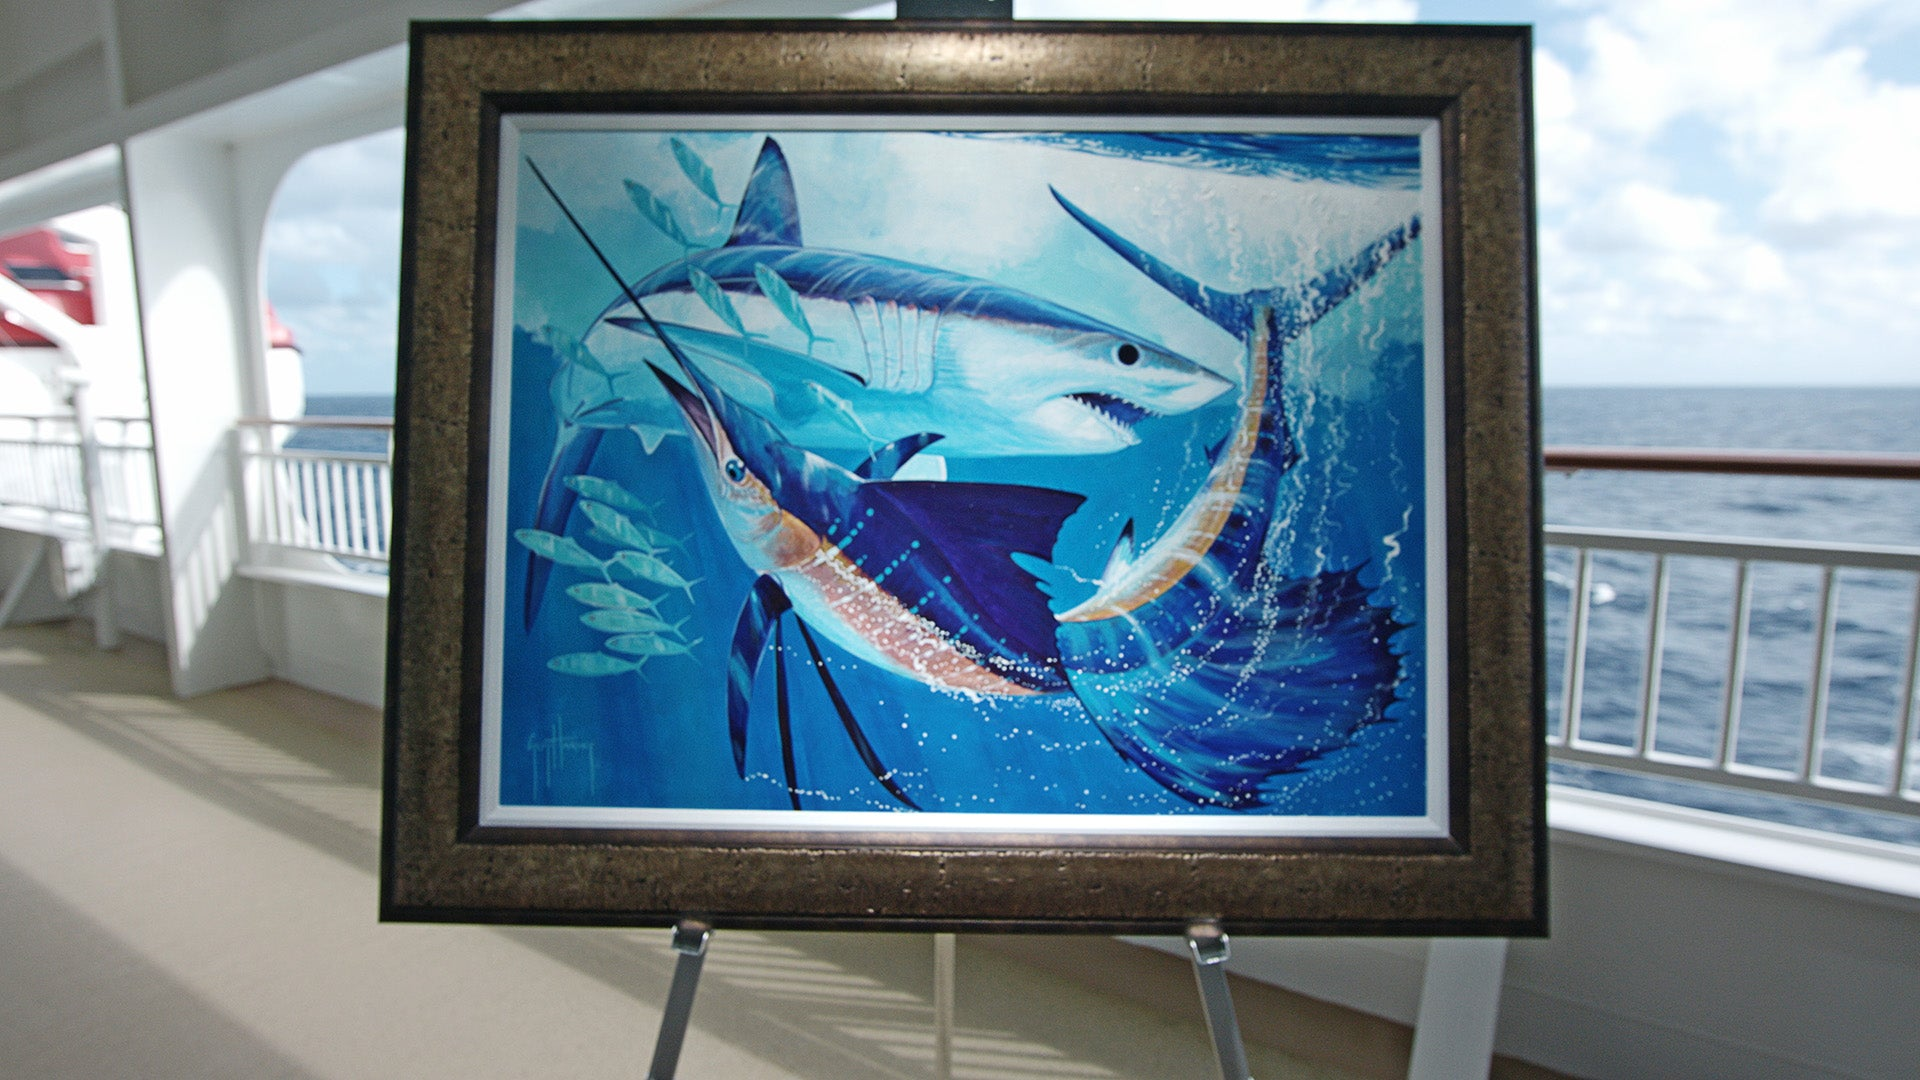 Original painting by Guy Harvey